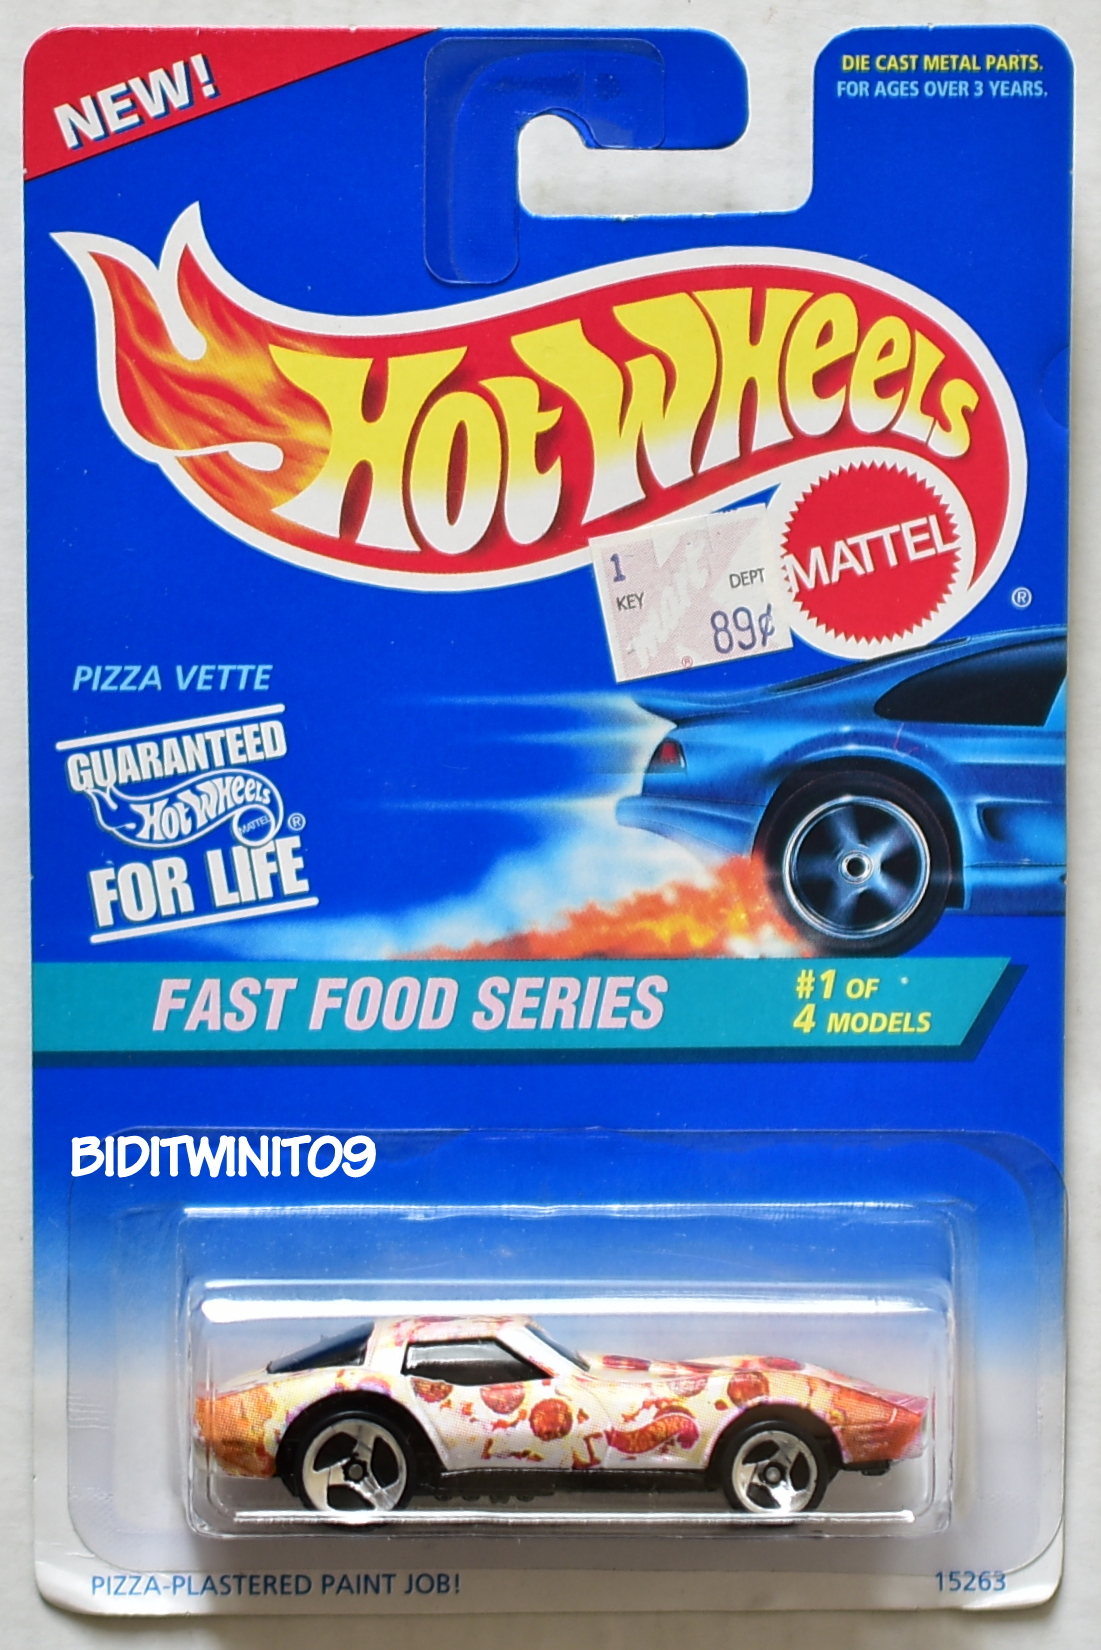 HOT WHEELS 1995 FAST FOOD SERIES PIZZA VETTE #1/4